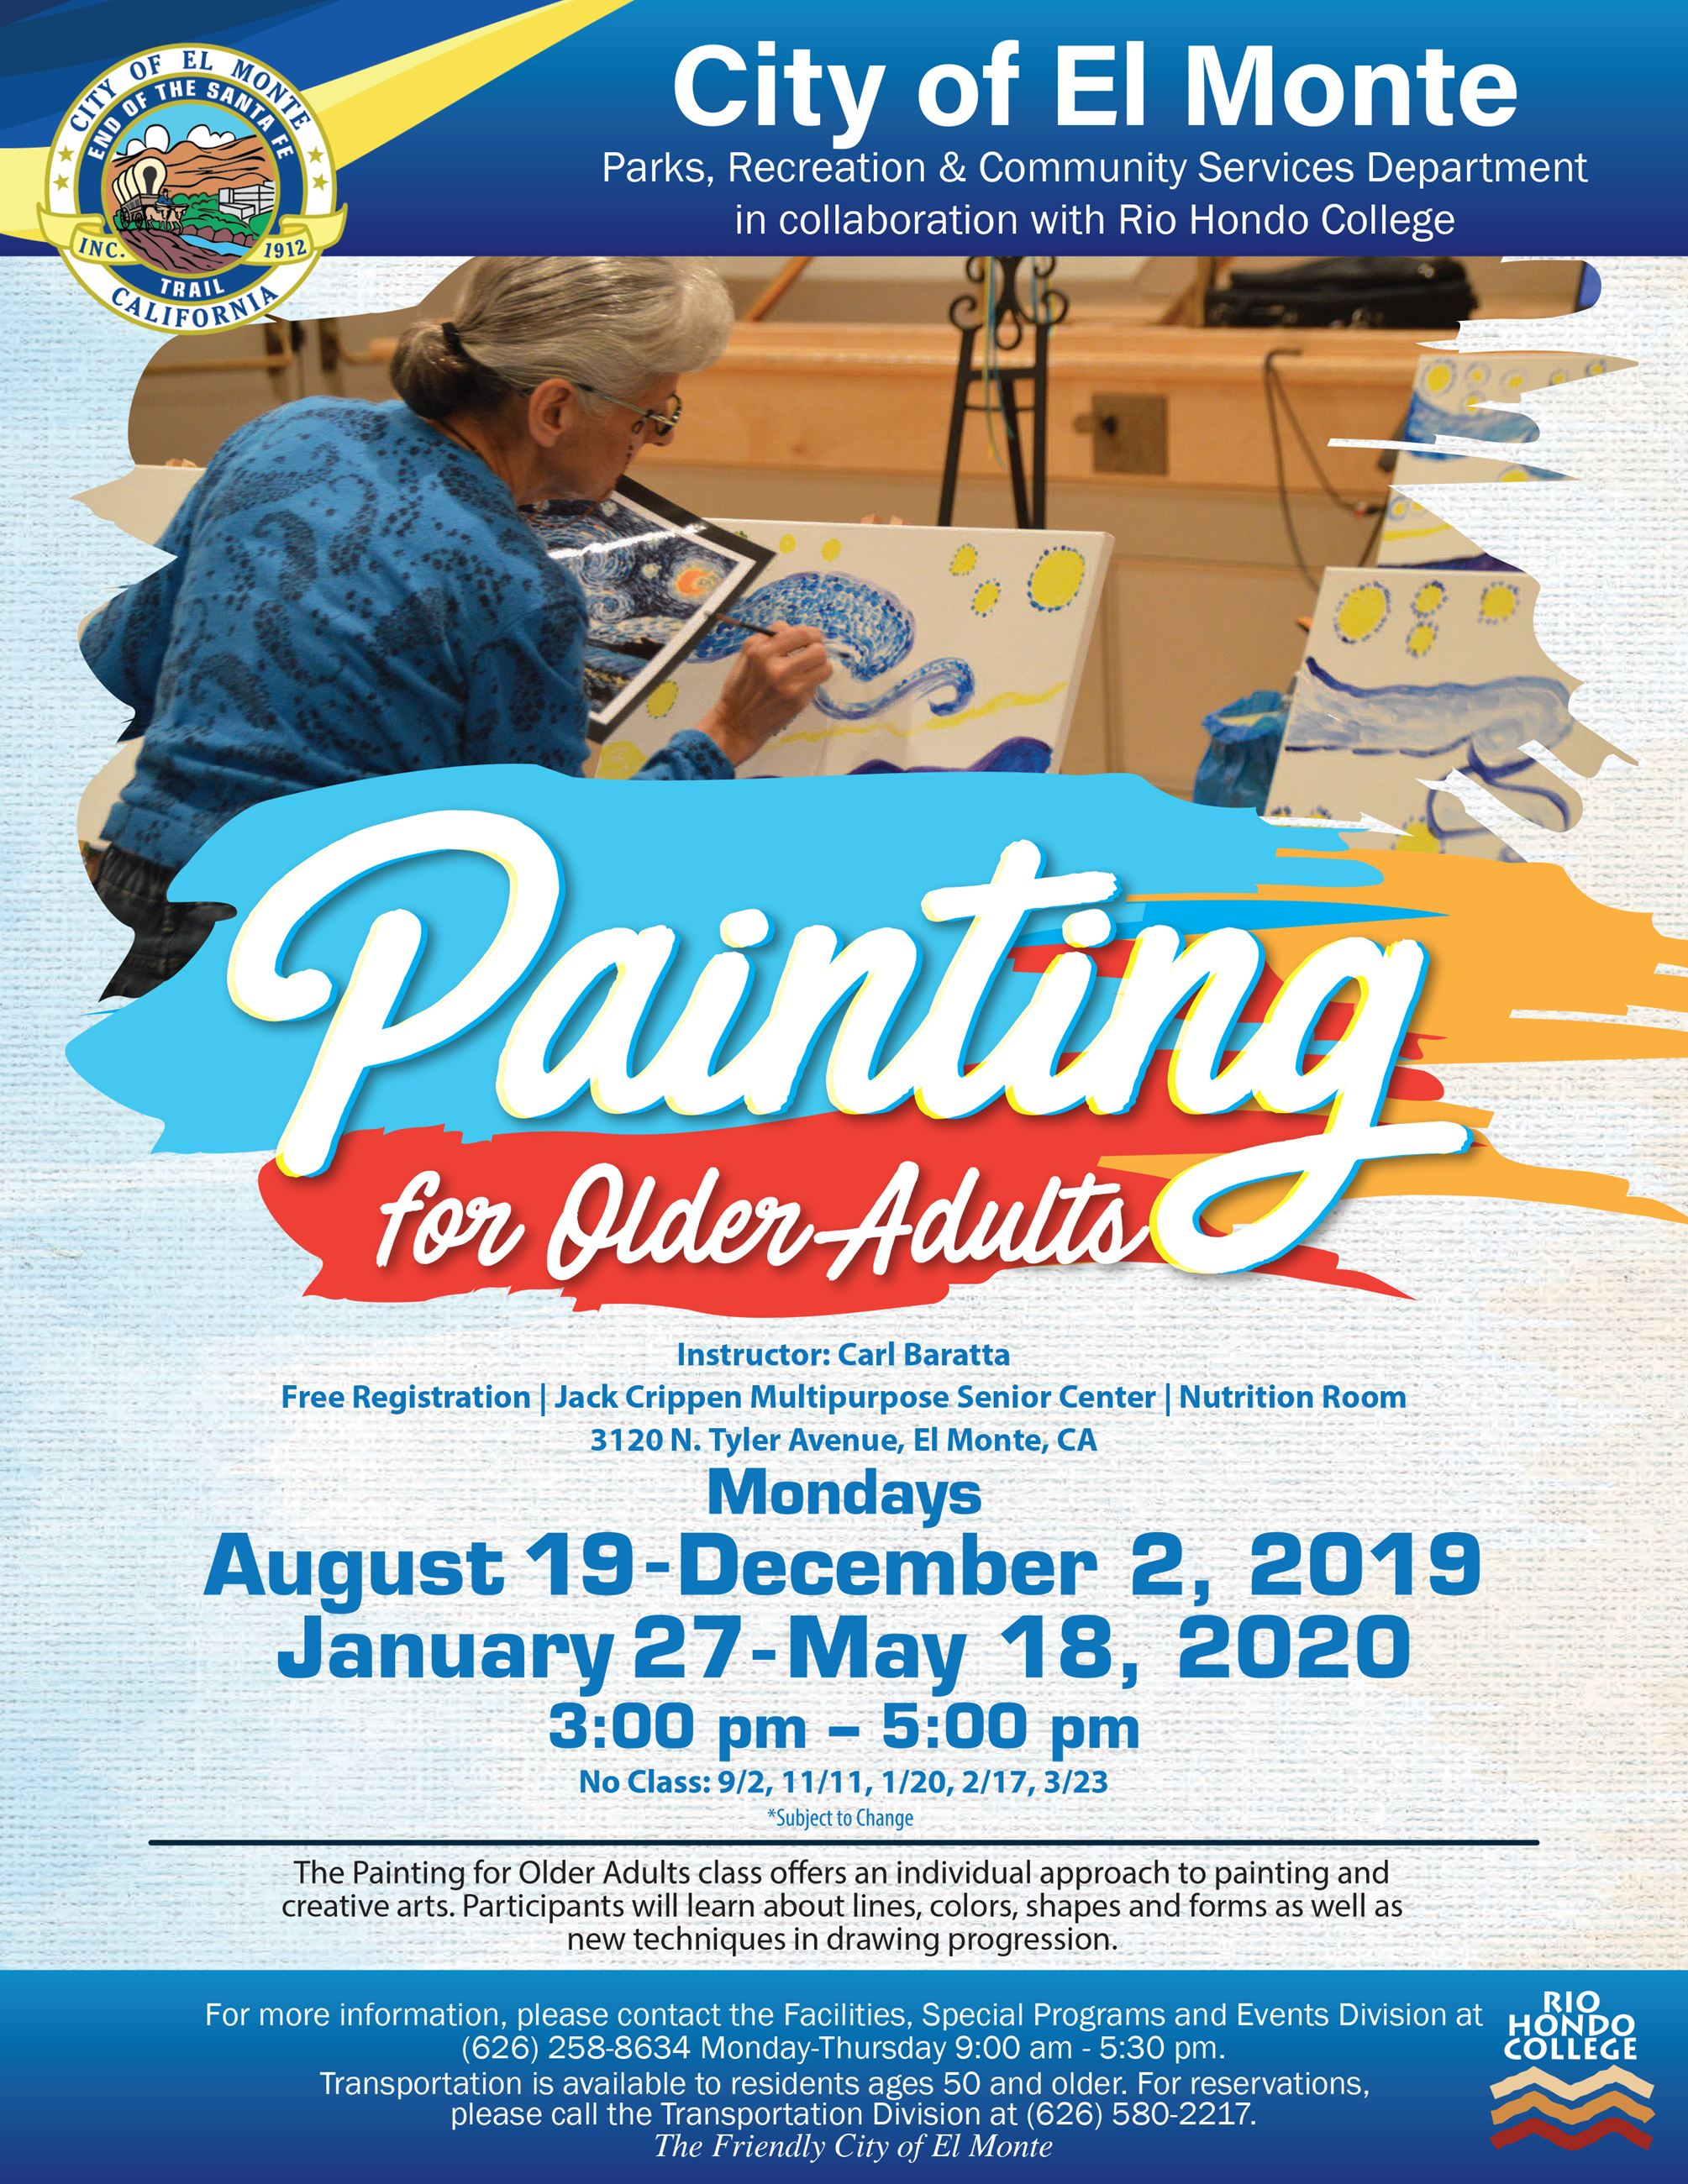 Painting for Older Adults_flyer_08119_F